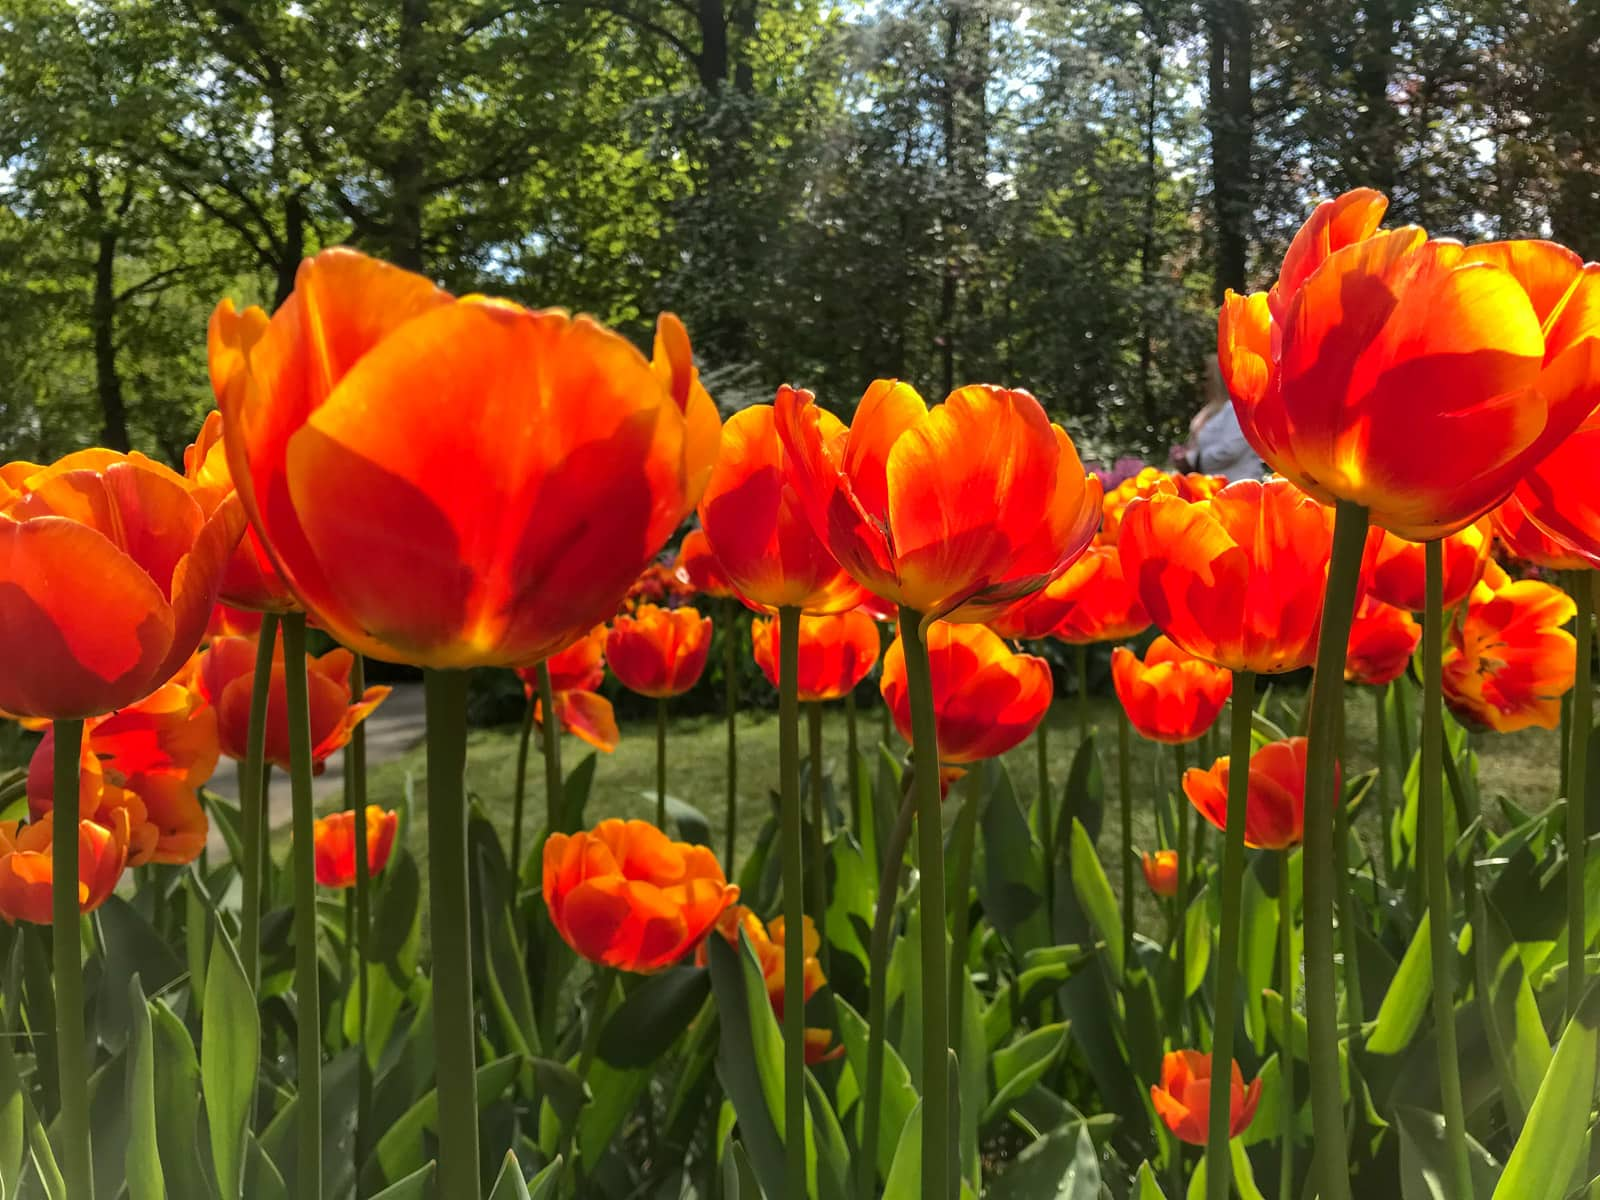 Bright orange tulips at eye level, with the tulips taking up much of the frame. Trees can be seen in the background.